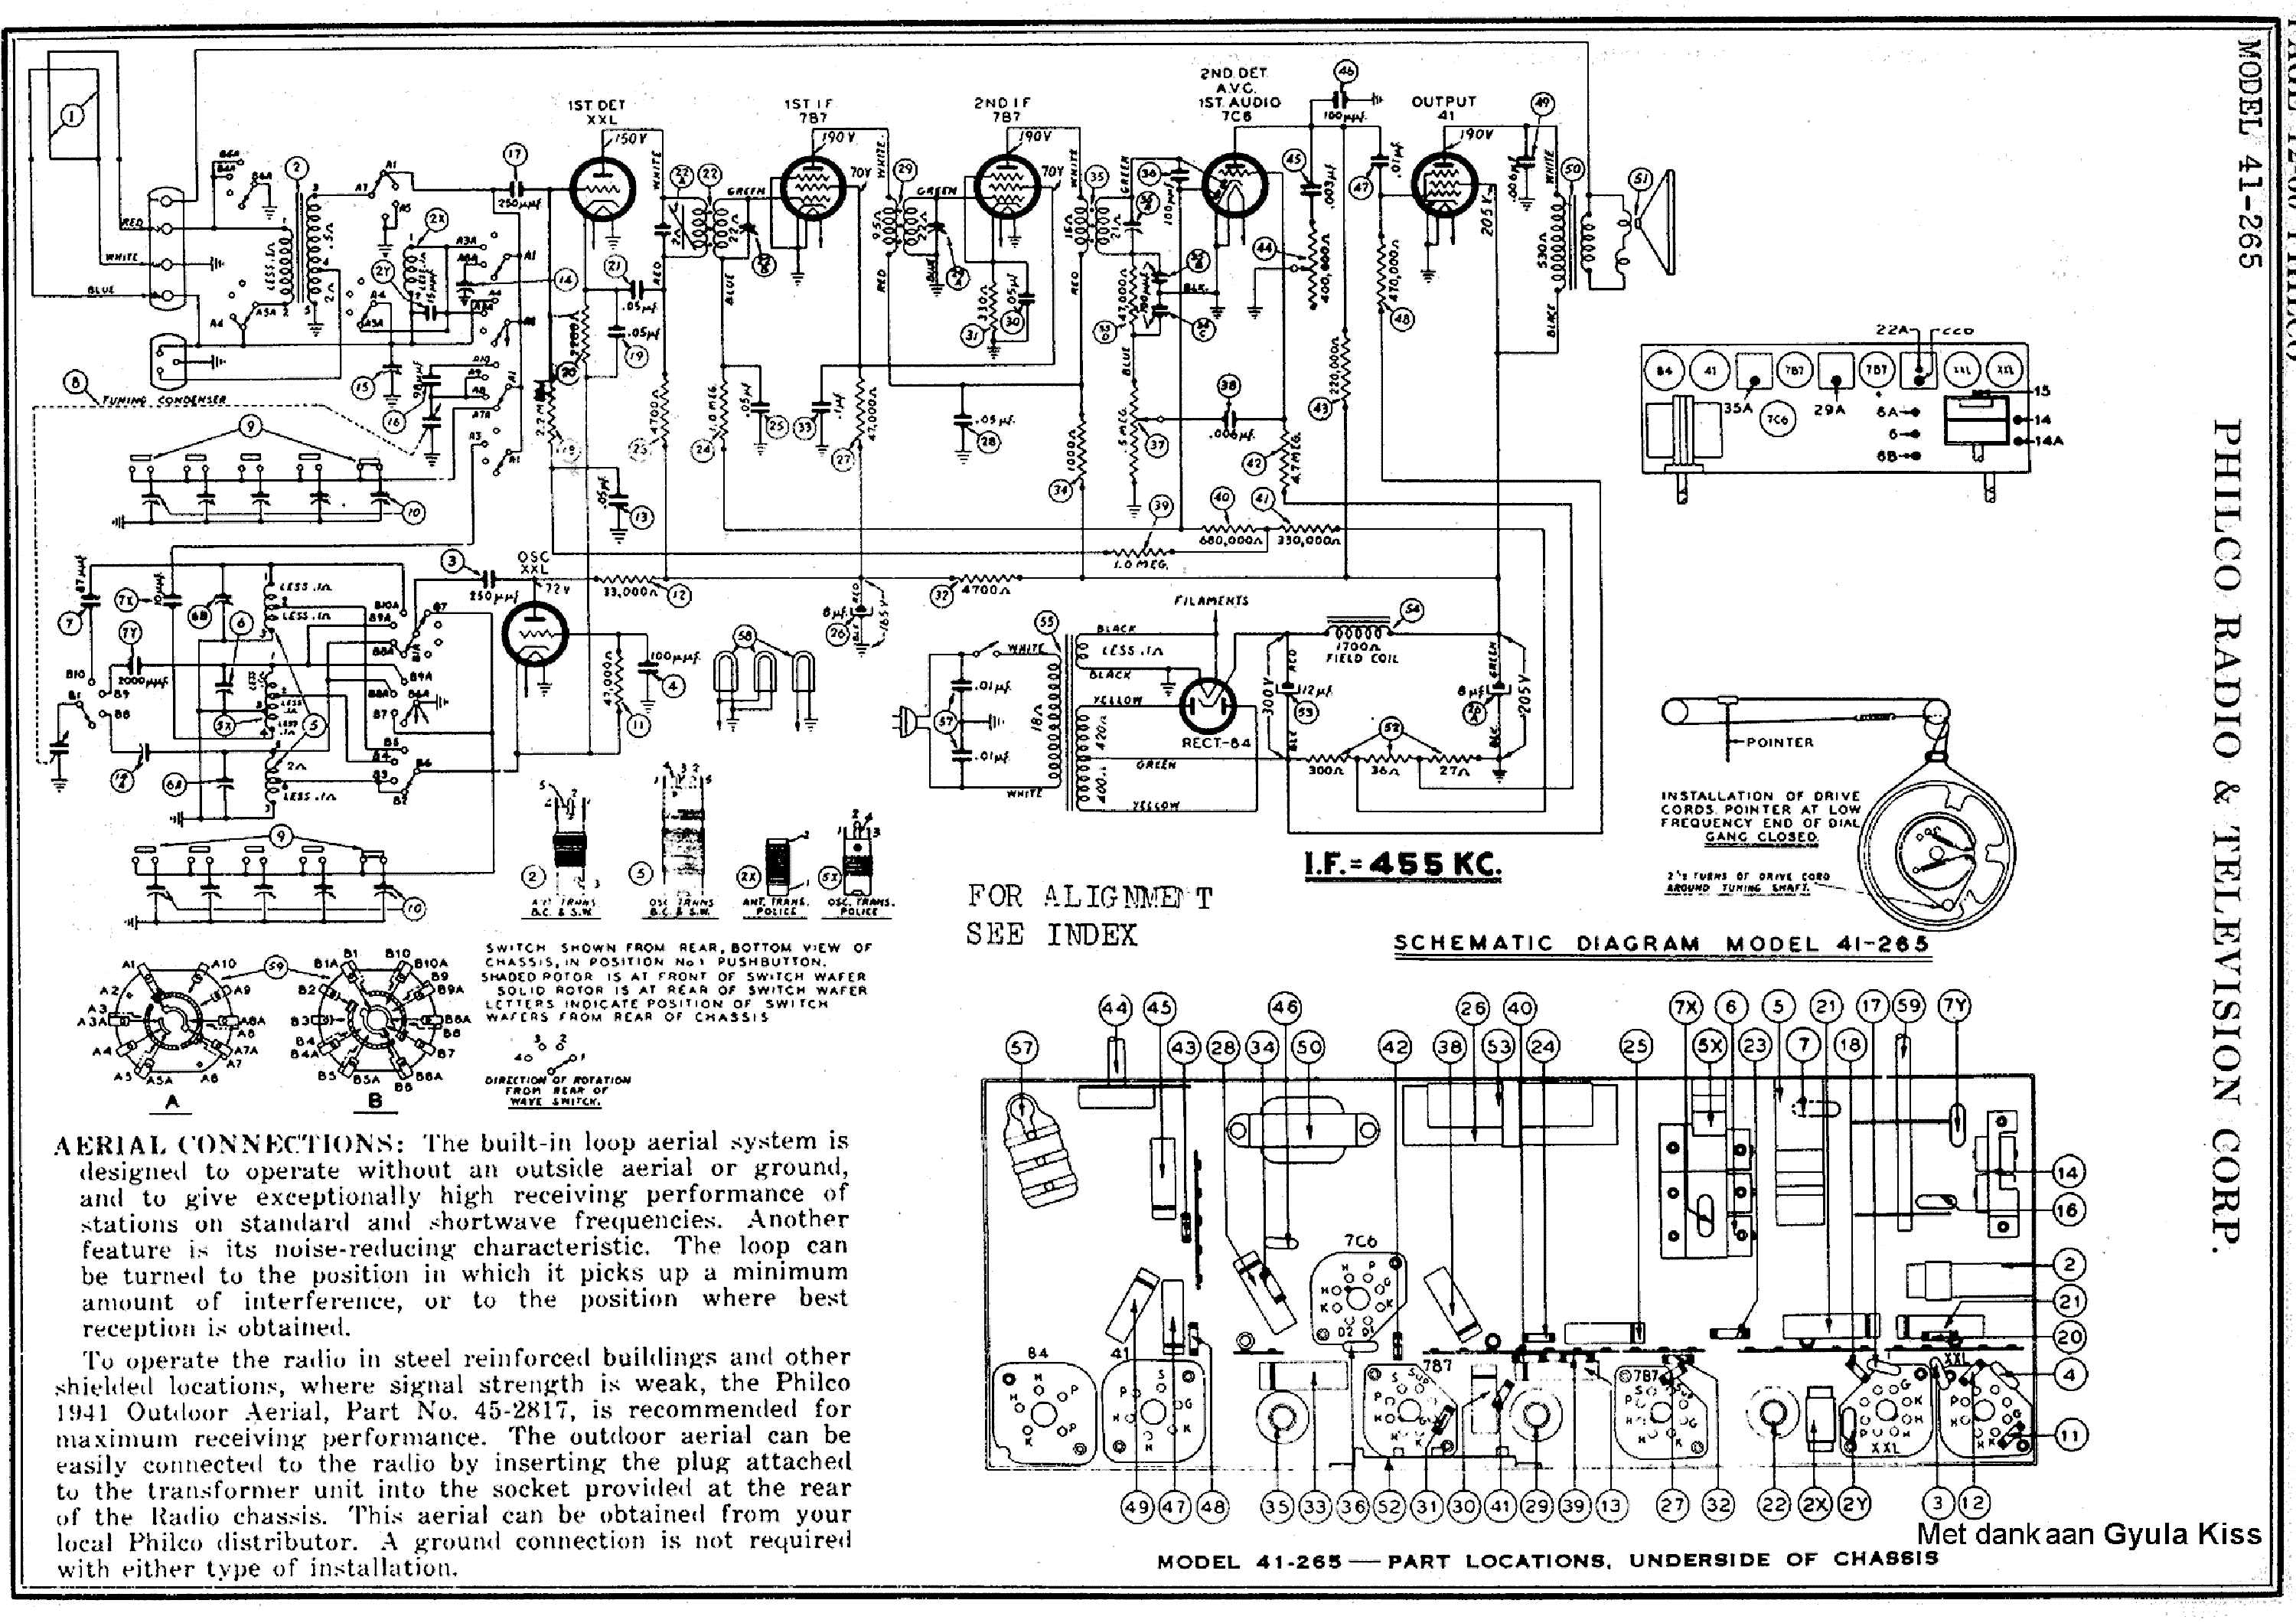 PHILCO 41-265 RADIO SM Service Manual download, schematics